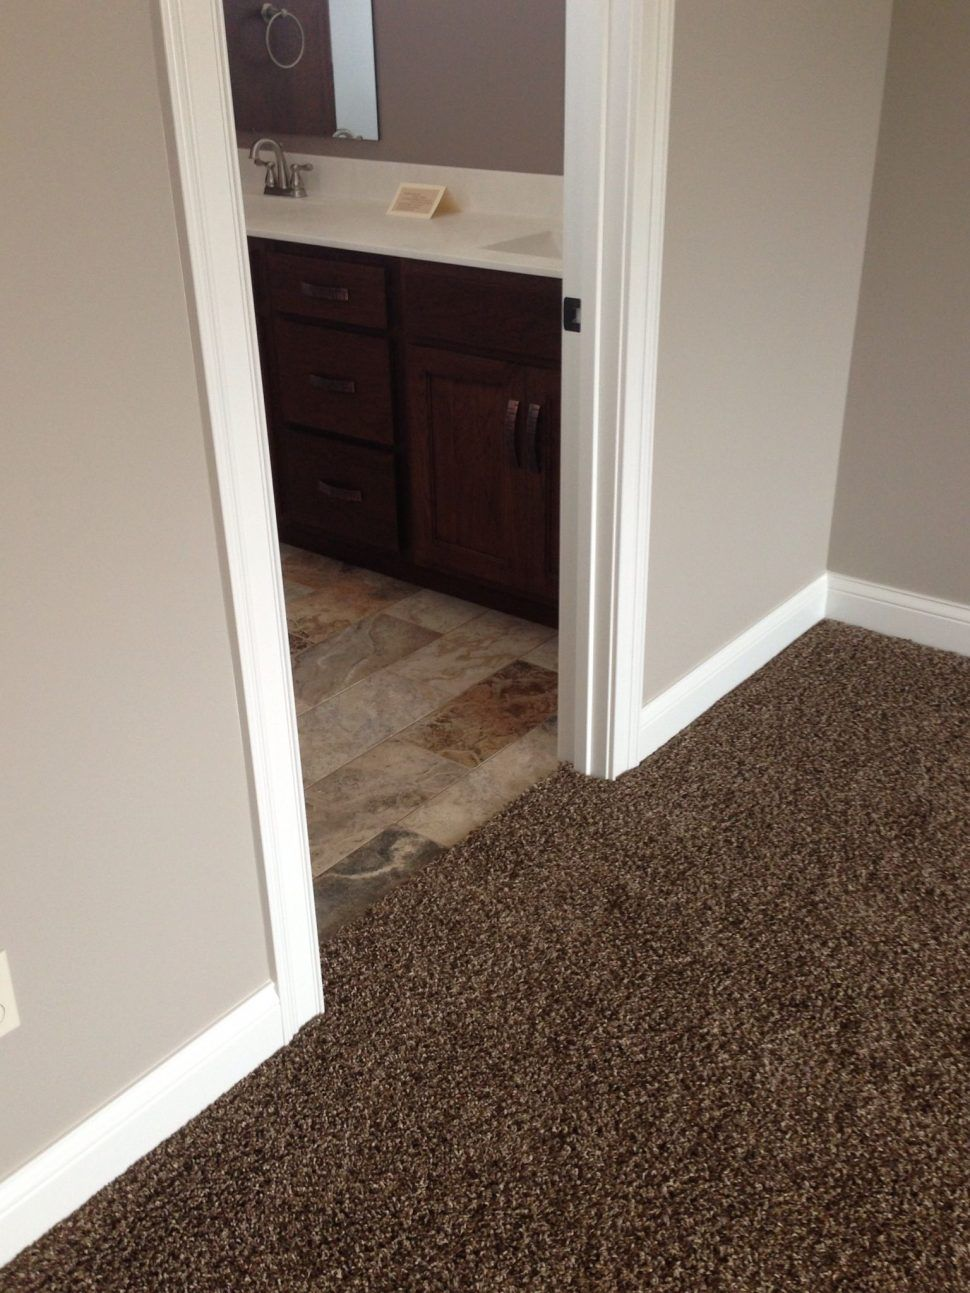 Bedroom like carpet looks much darker in this pic and tile - Bedroom paint and carpet color combinations ...